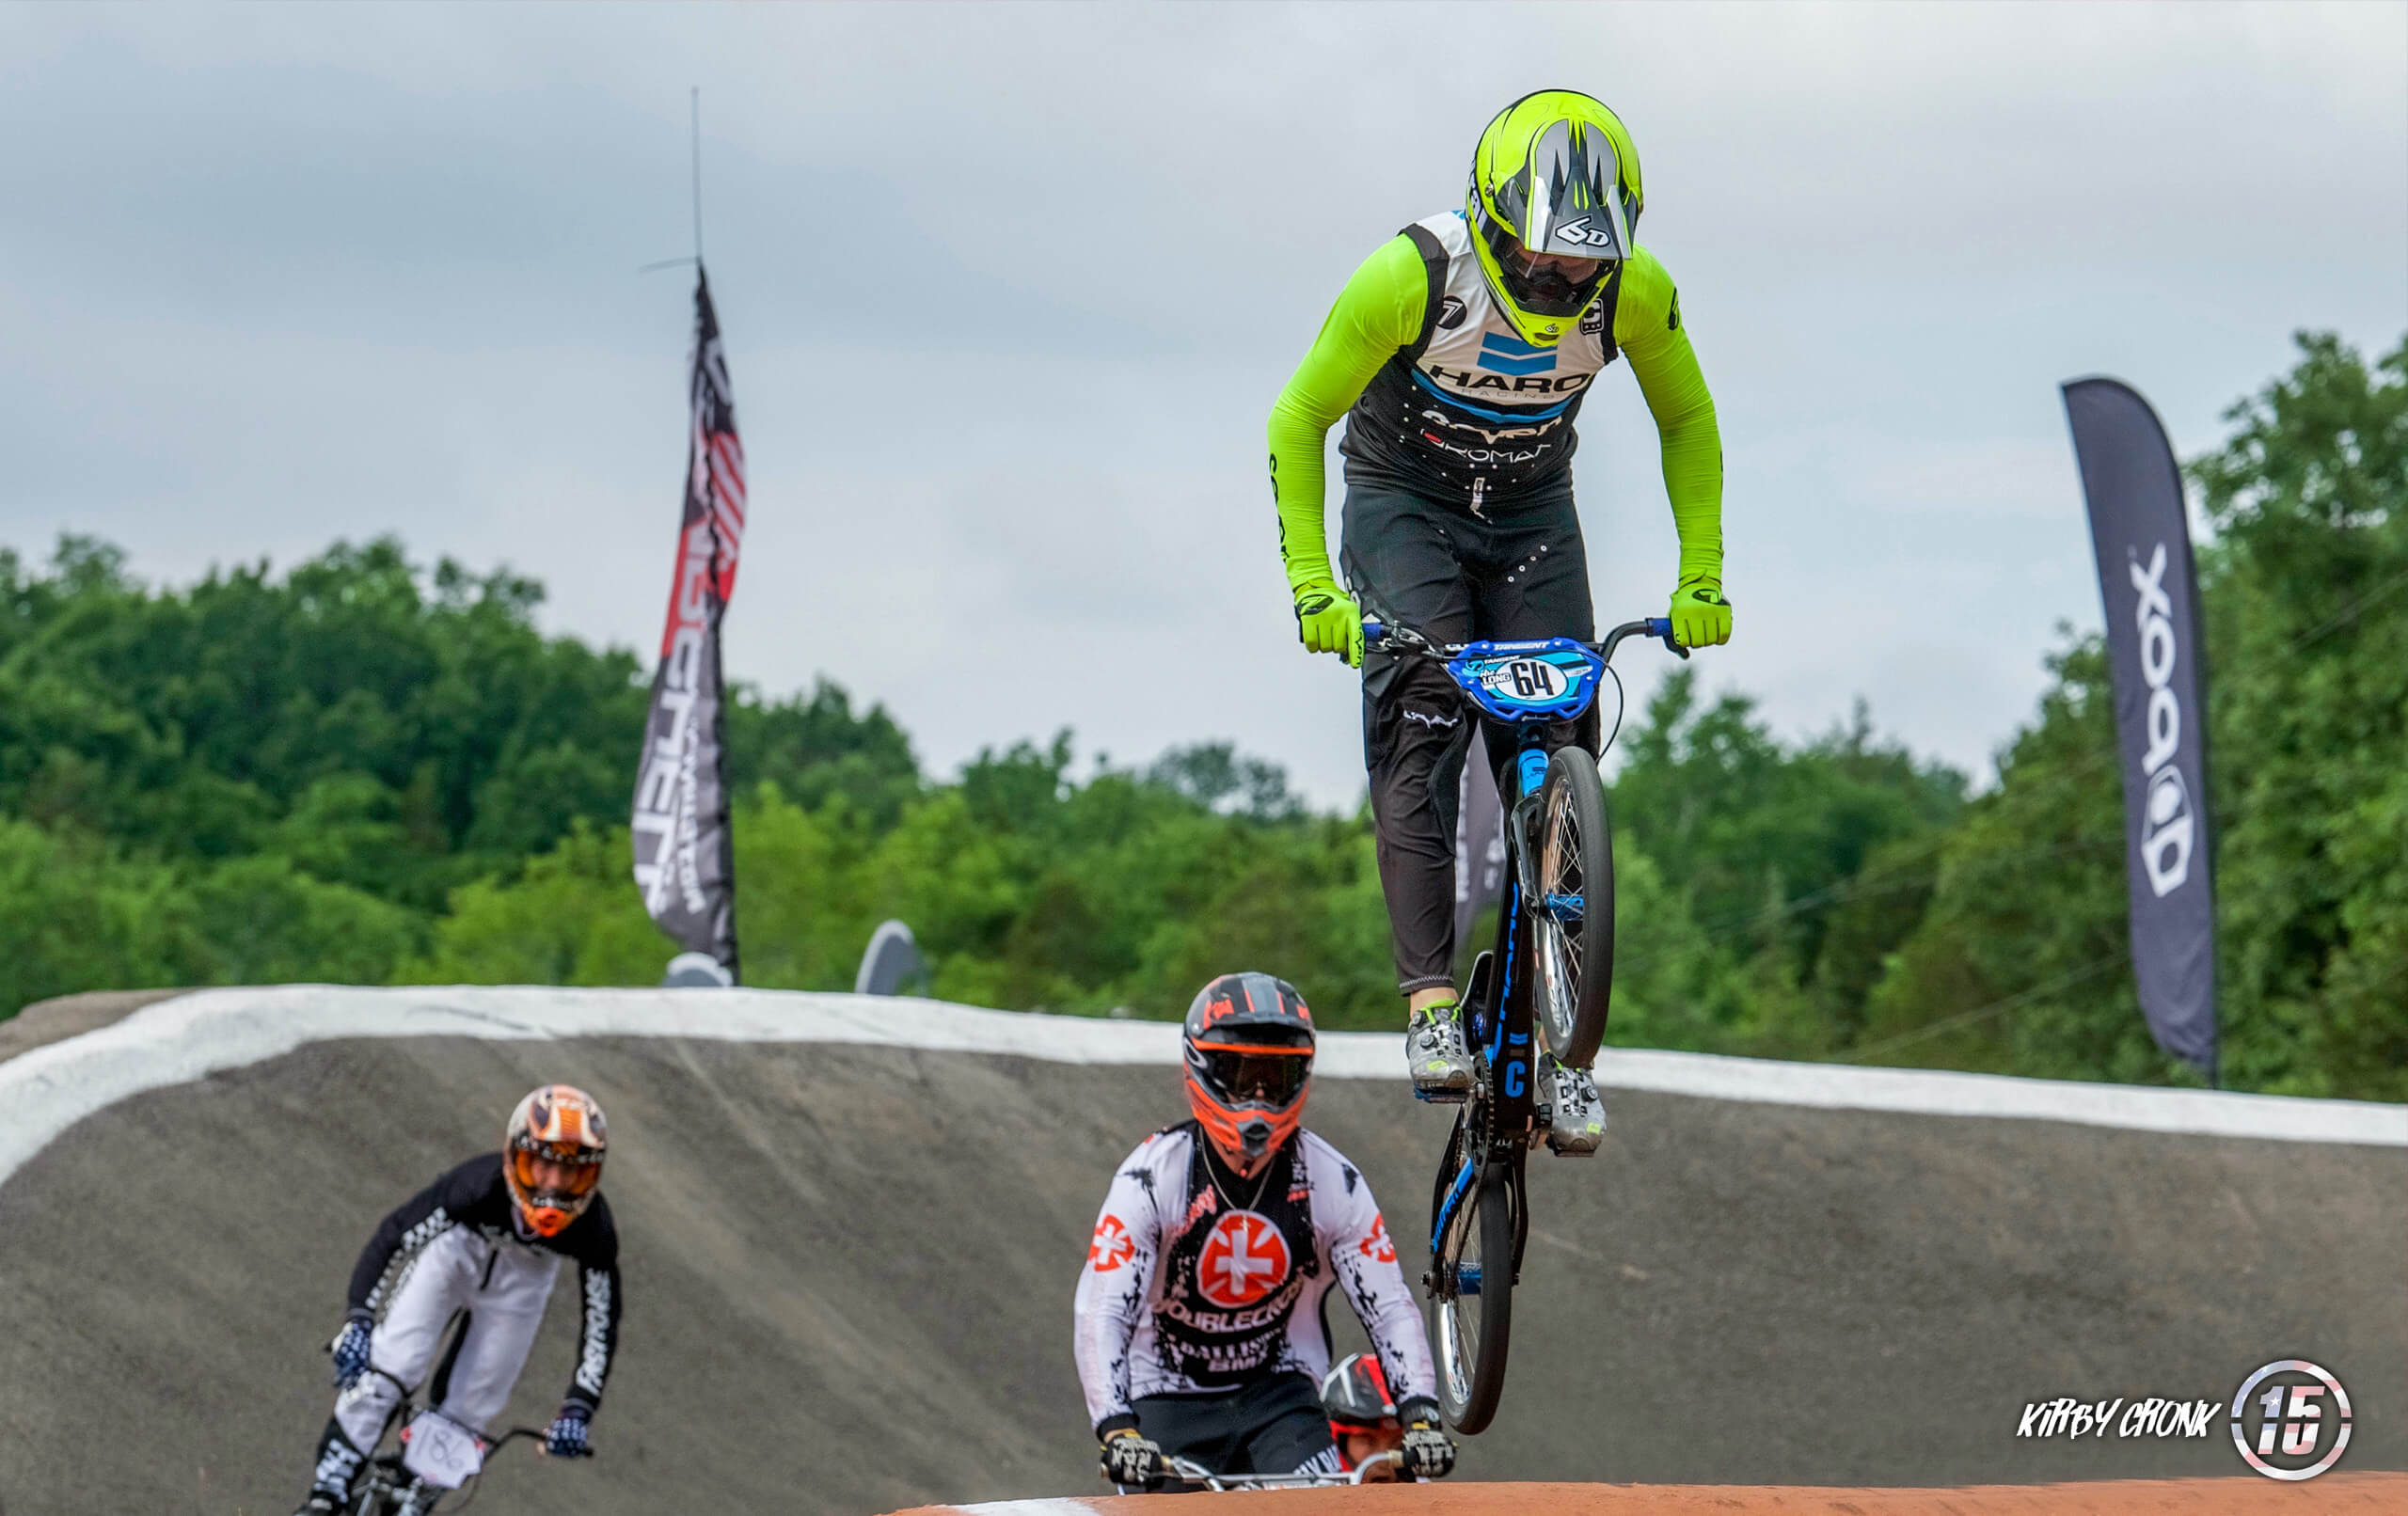 Nic Long Predicts 2018 BMX Worlds - Kirby Cronk